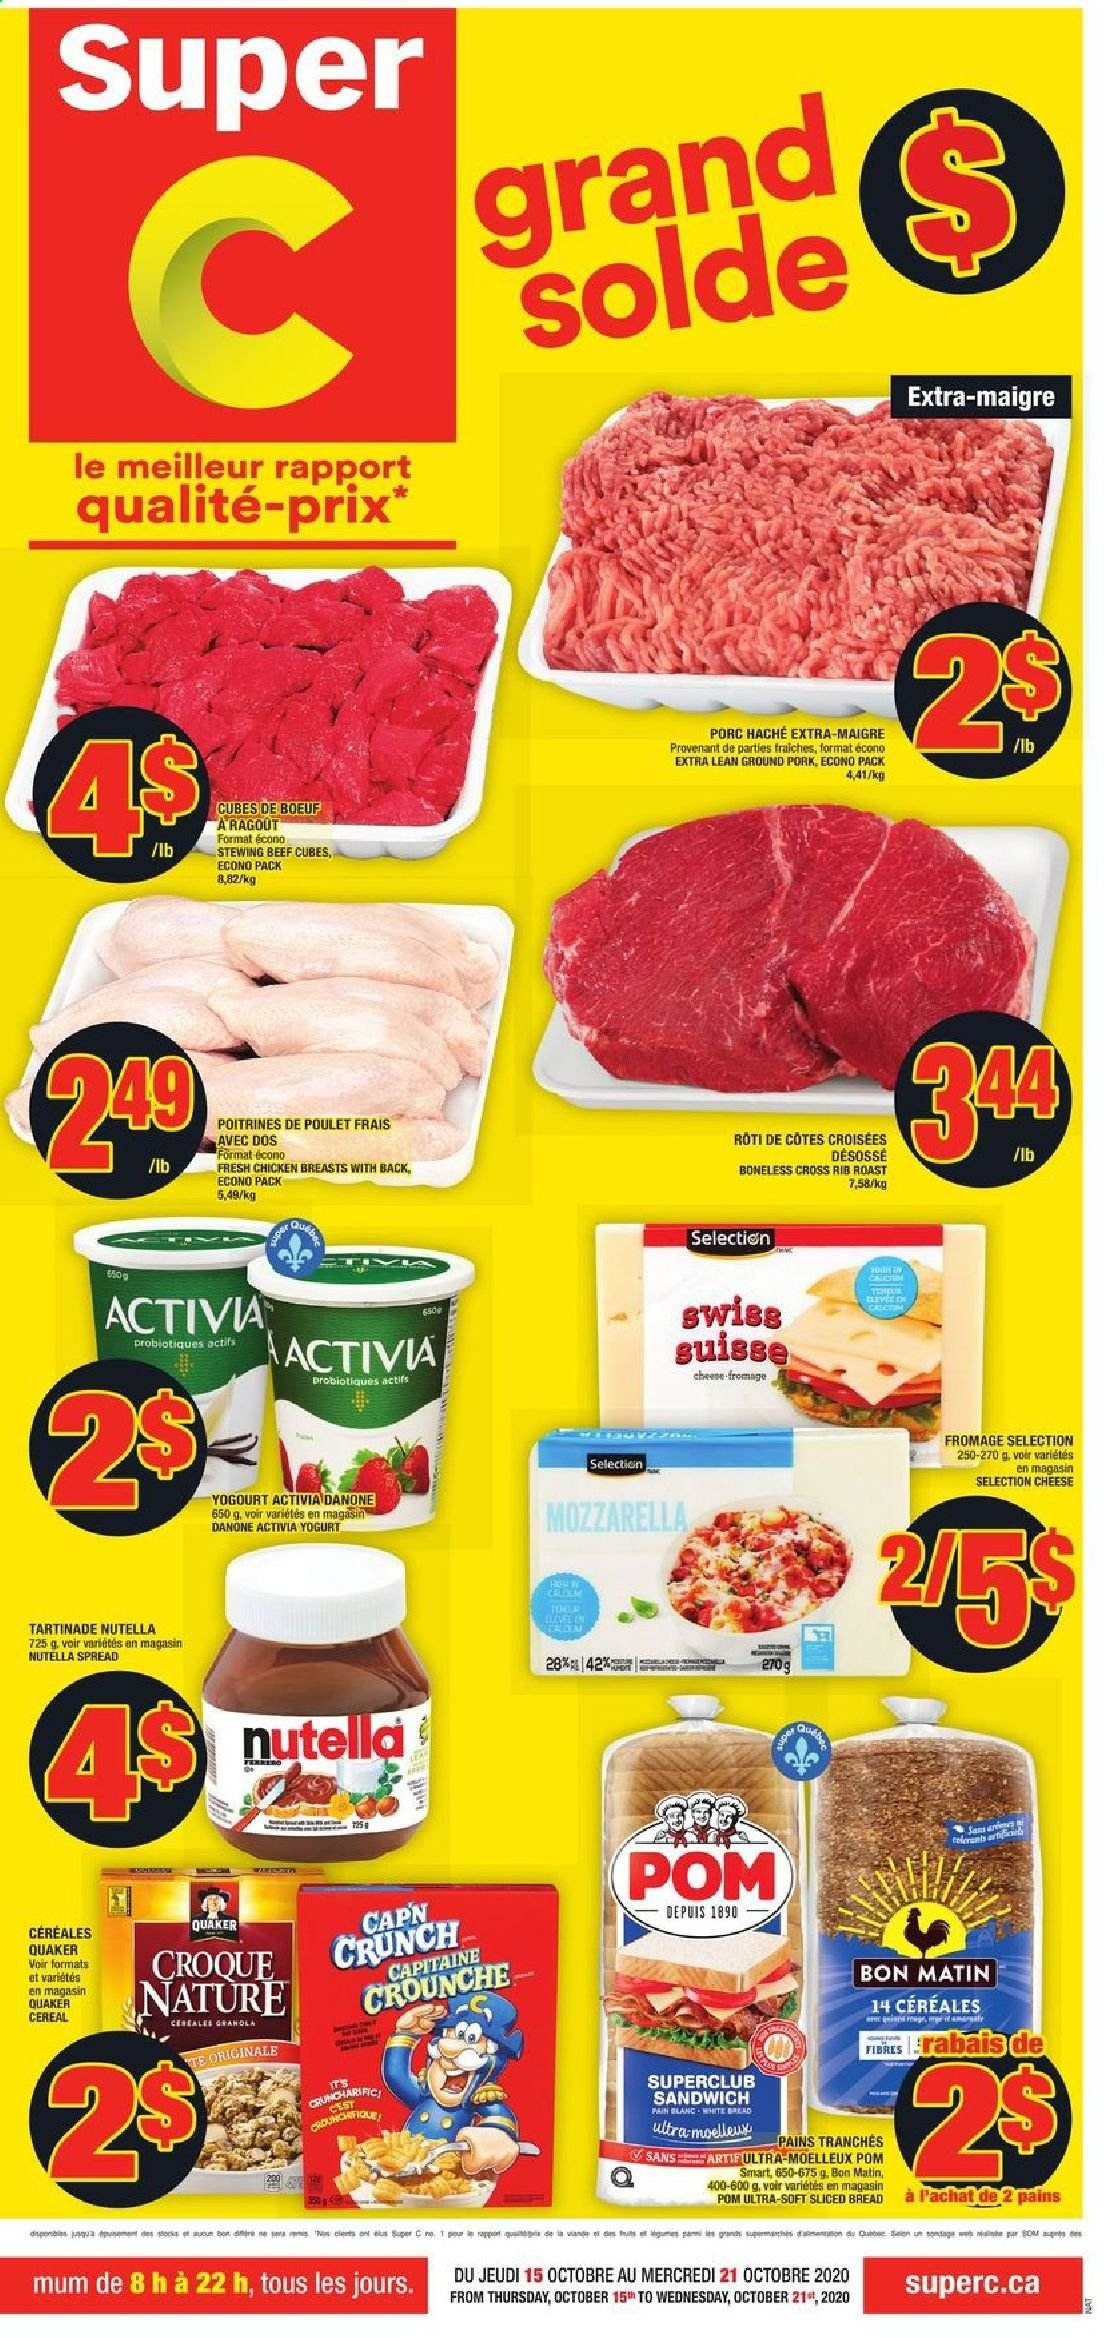 Super C Flyer - October 15, 2020 - October 21, 2020 - Sales products - beef meat, bread, cereals, ground pork, mozzarella, rib roast, yogurt, pork meat, chicken, chicken breast, nutella, cheese, sandwich, cereal, danone, poulet, porc, activia, bœuf, fromage, roast, chicken breasts. Page 1.